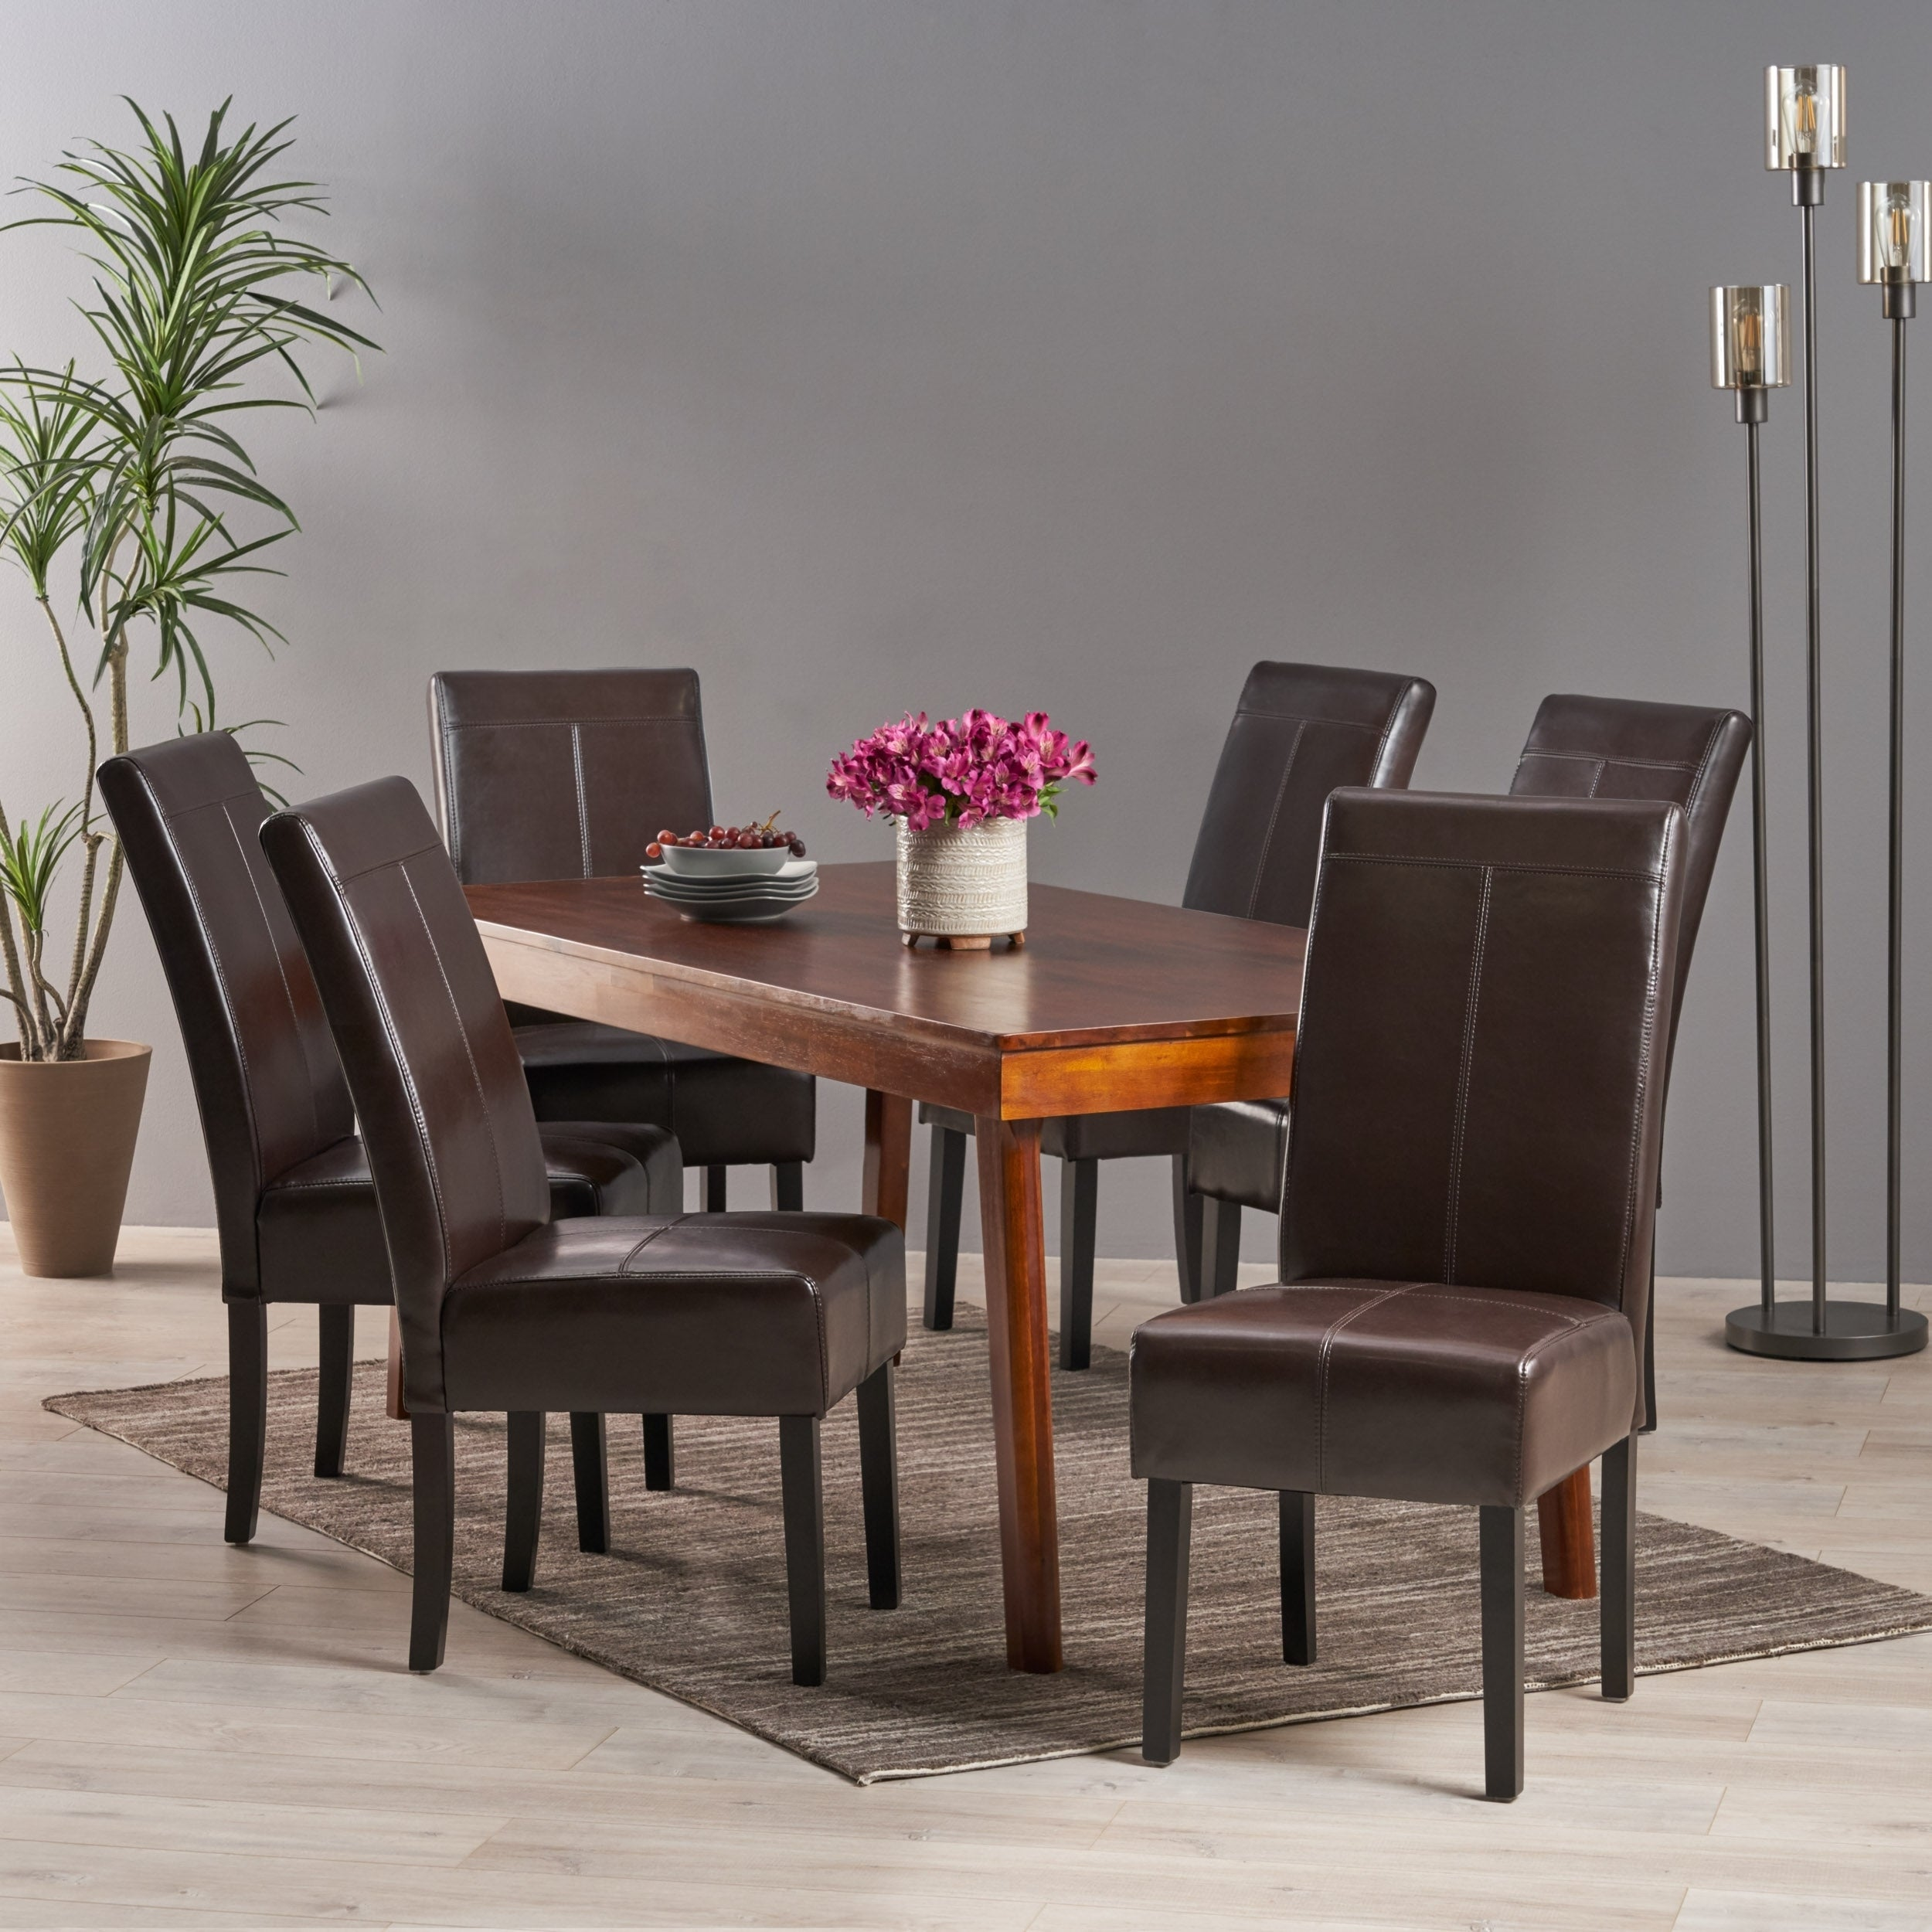 T Stitch Chocolate Brown Bonded Leather Dining Chair Set Of 6 By Christopher Knight Home On Sale Overstock 12304691